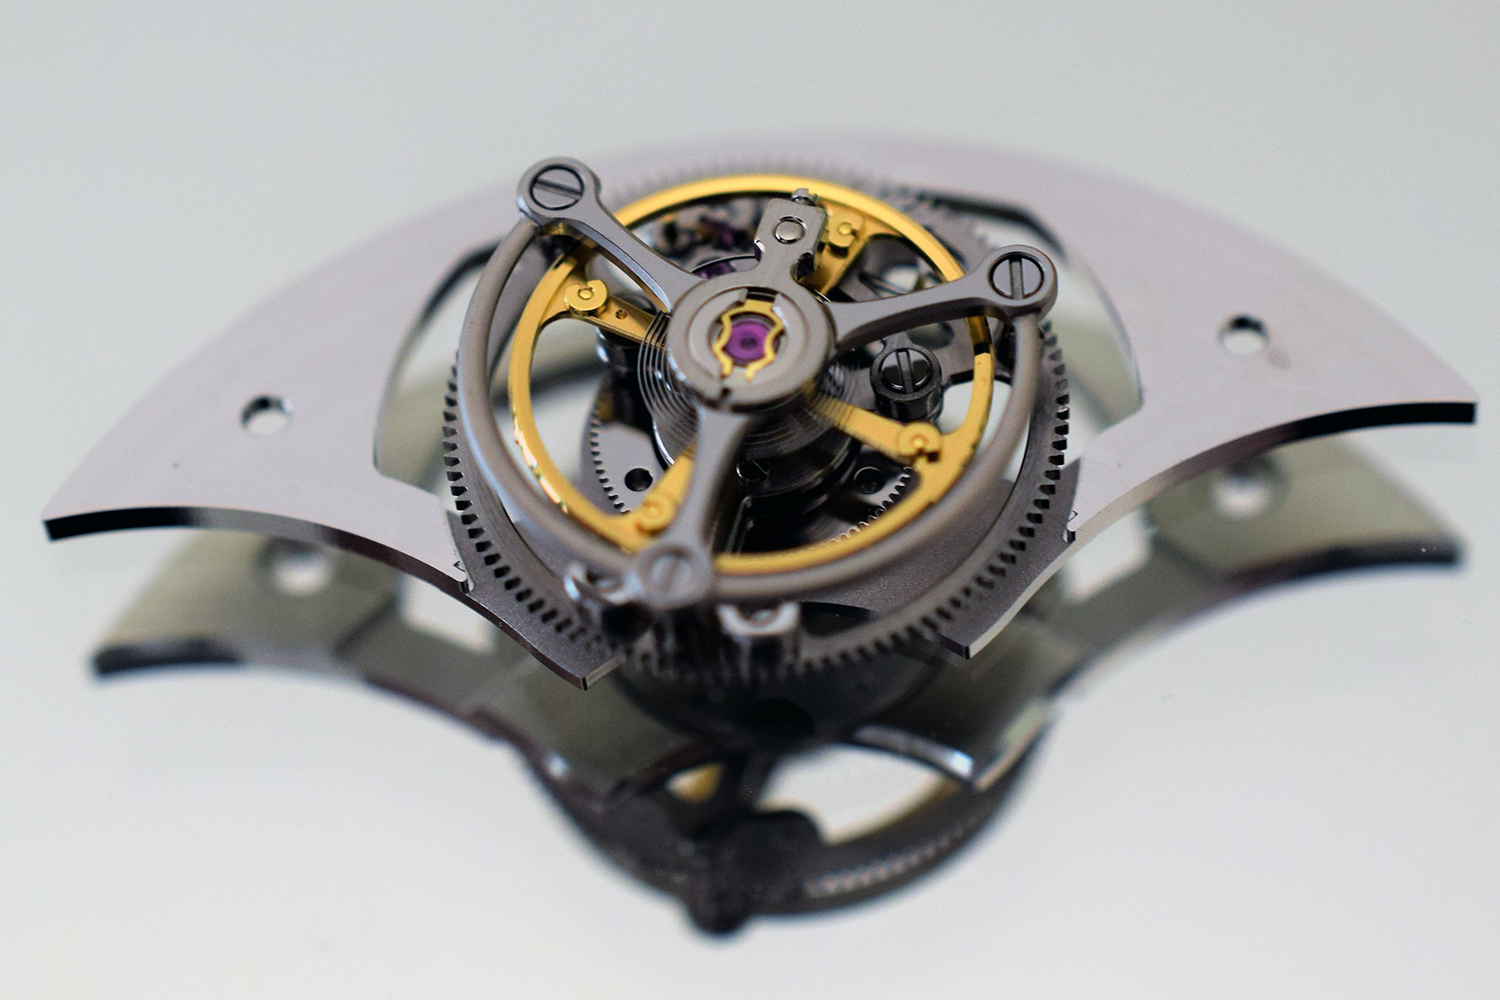 Vaucher Manufacture Fleurier – ExtraFlat Flying Tourbillon 5430